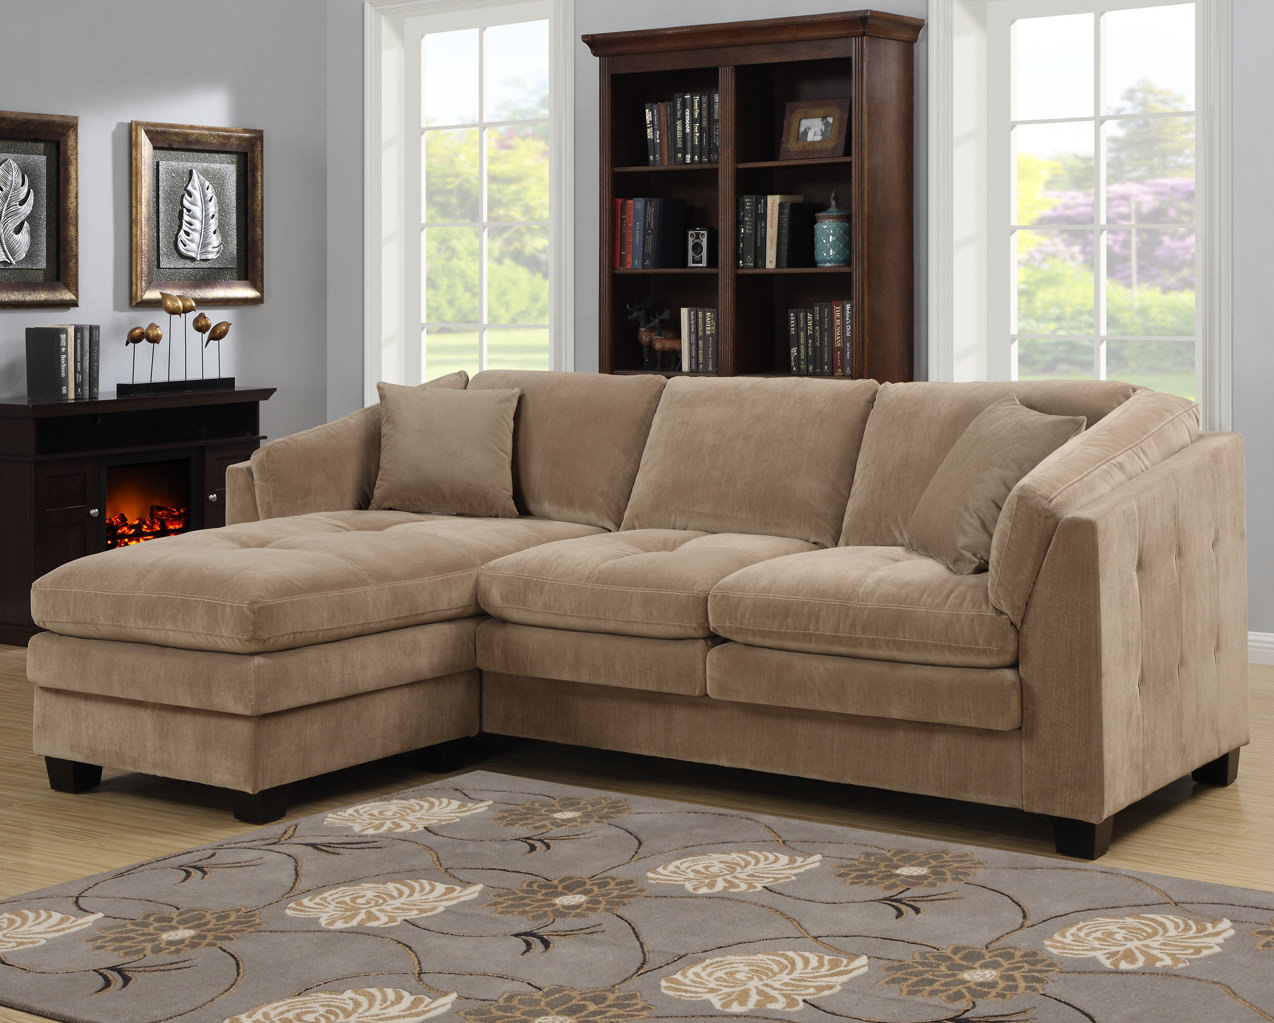 Microfiber Modular Sectional Sofa